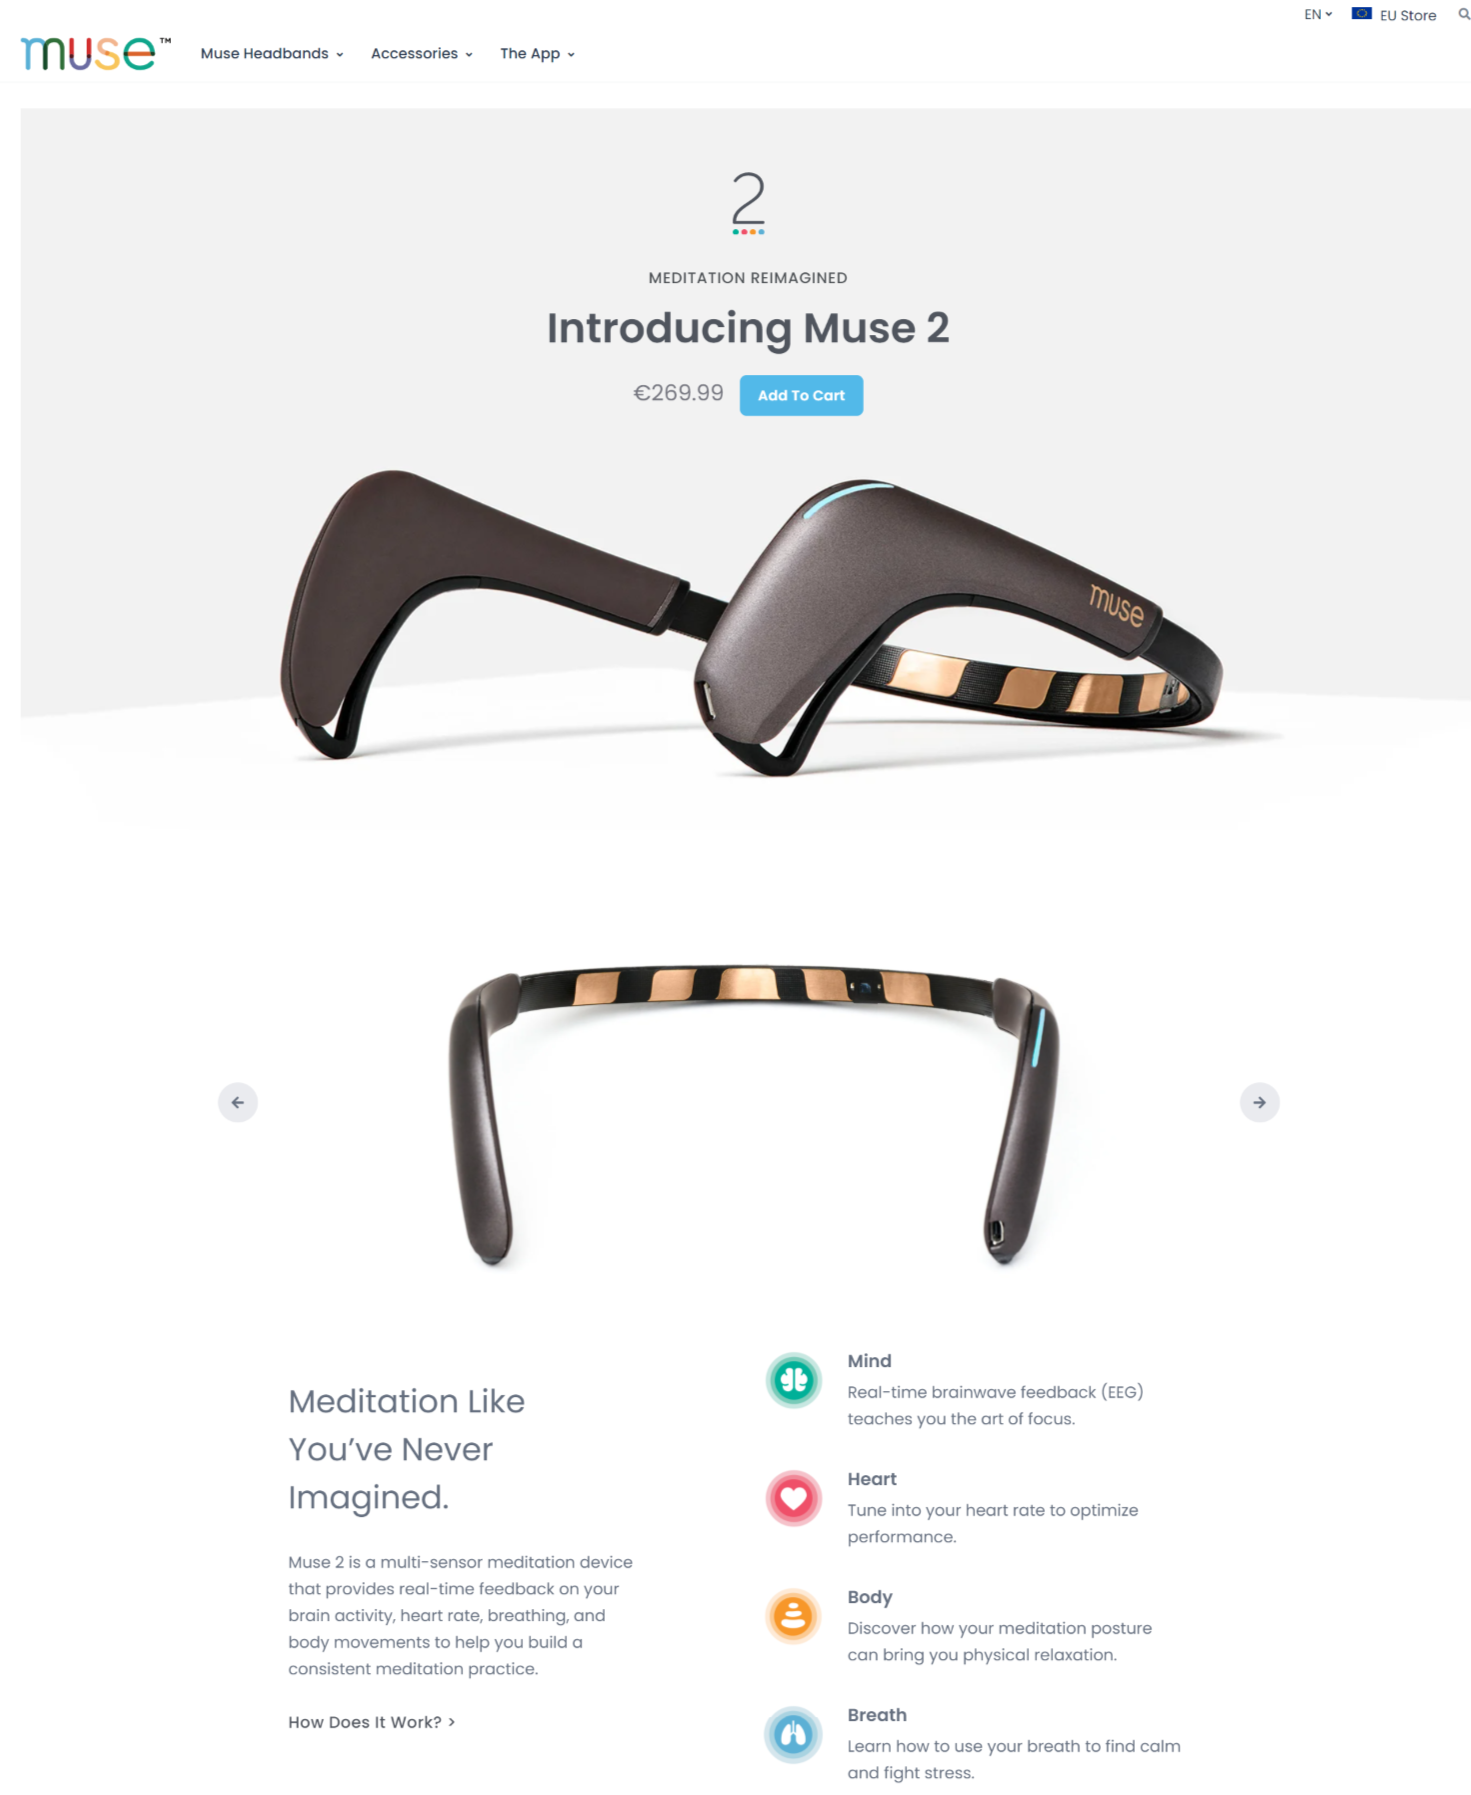 single product ecommerce page